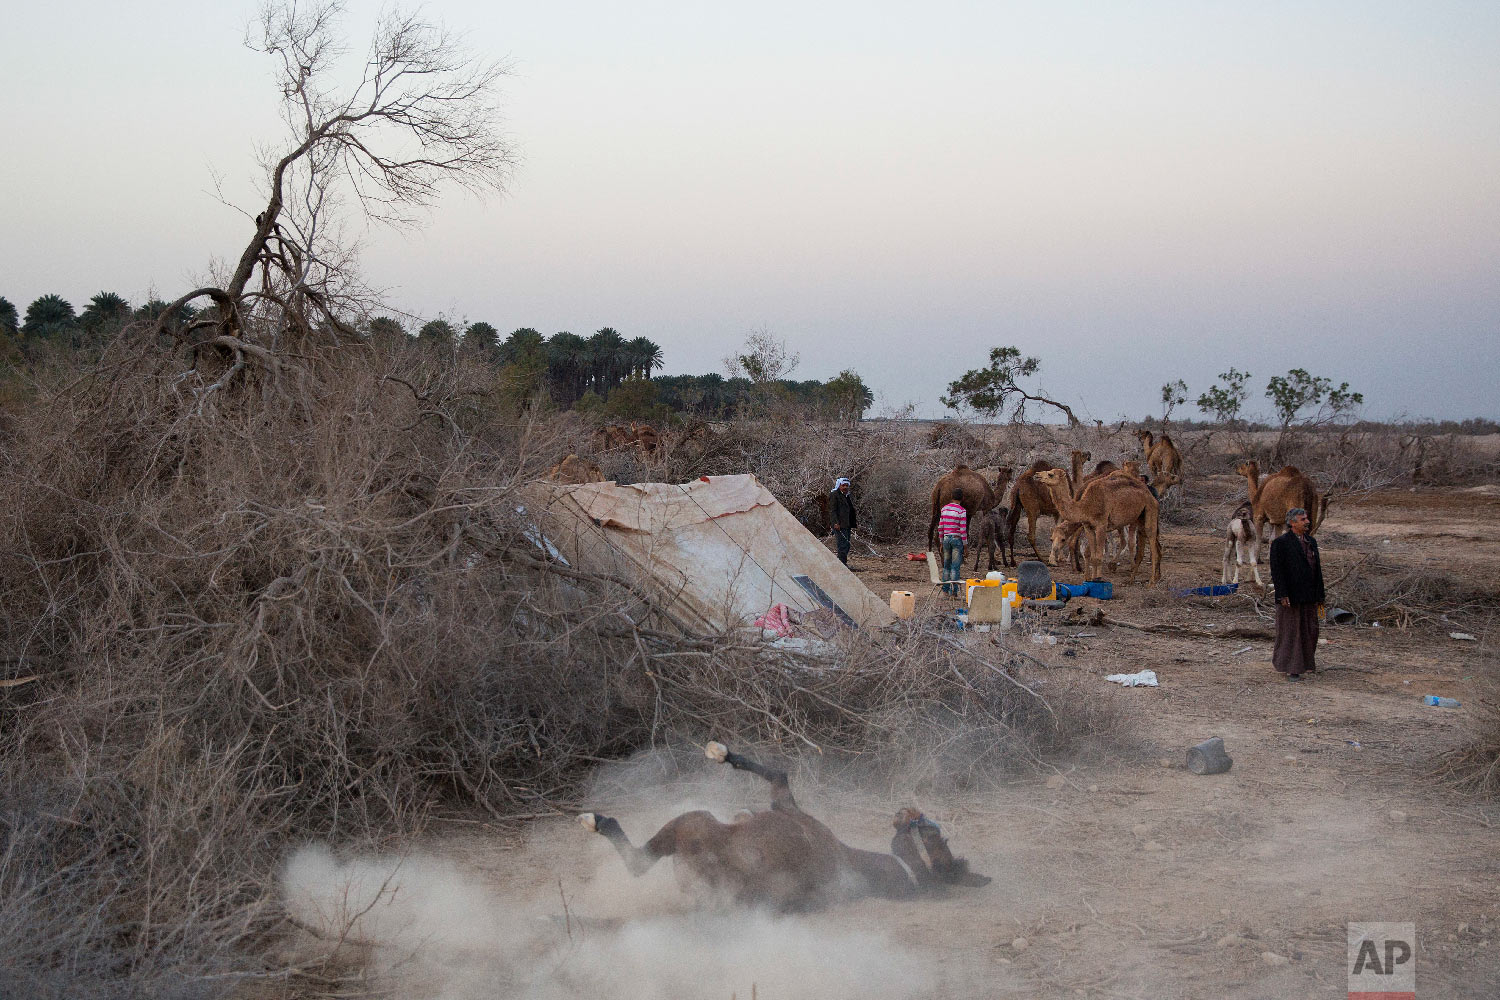 In this Monday, Jan. 22, 2018 photo, camels are back to the night camp after grazing all day in the open field at the territory of Israeli Kibbutz Kalya, near the Dead Sea in the West Bank. For three months a year, in the winter time Bedouin Arab herders take their 130 camels to graze on the shores of the Dead Sea, at the lowest place on Earth. (AP Photo/Oded Balilty)